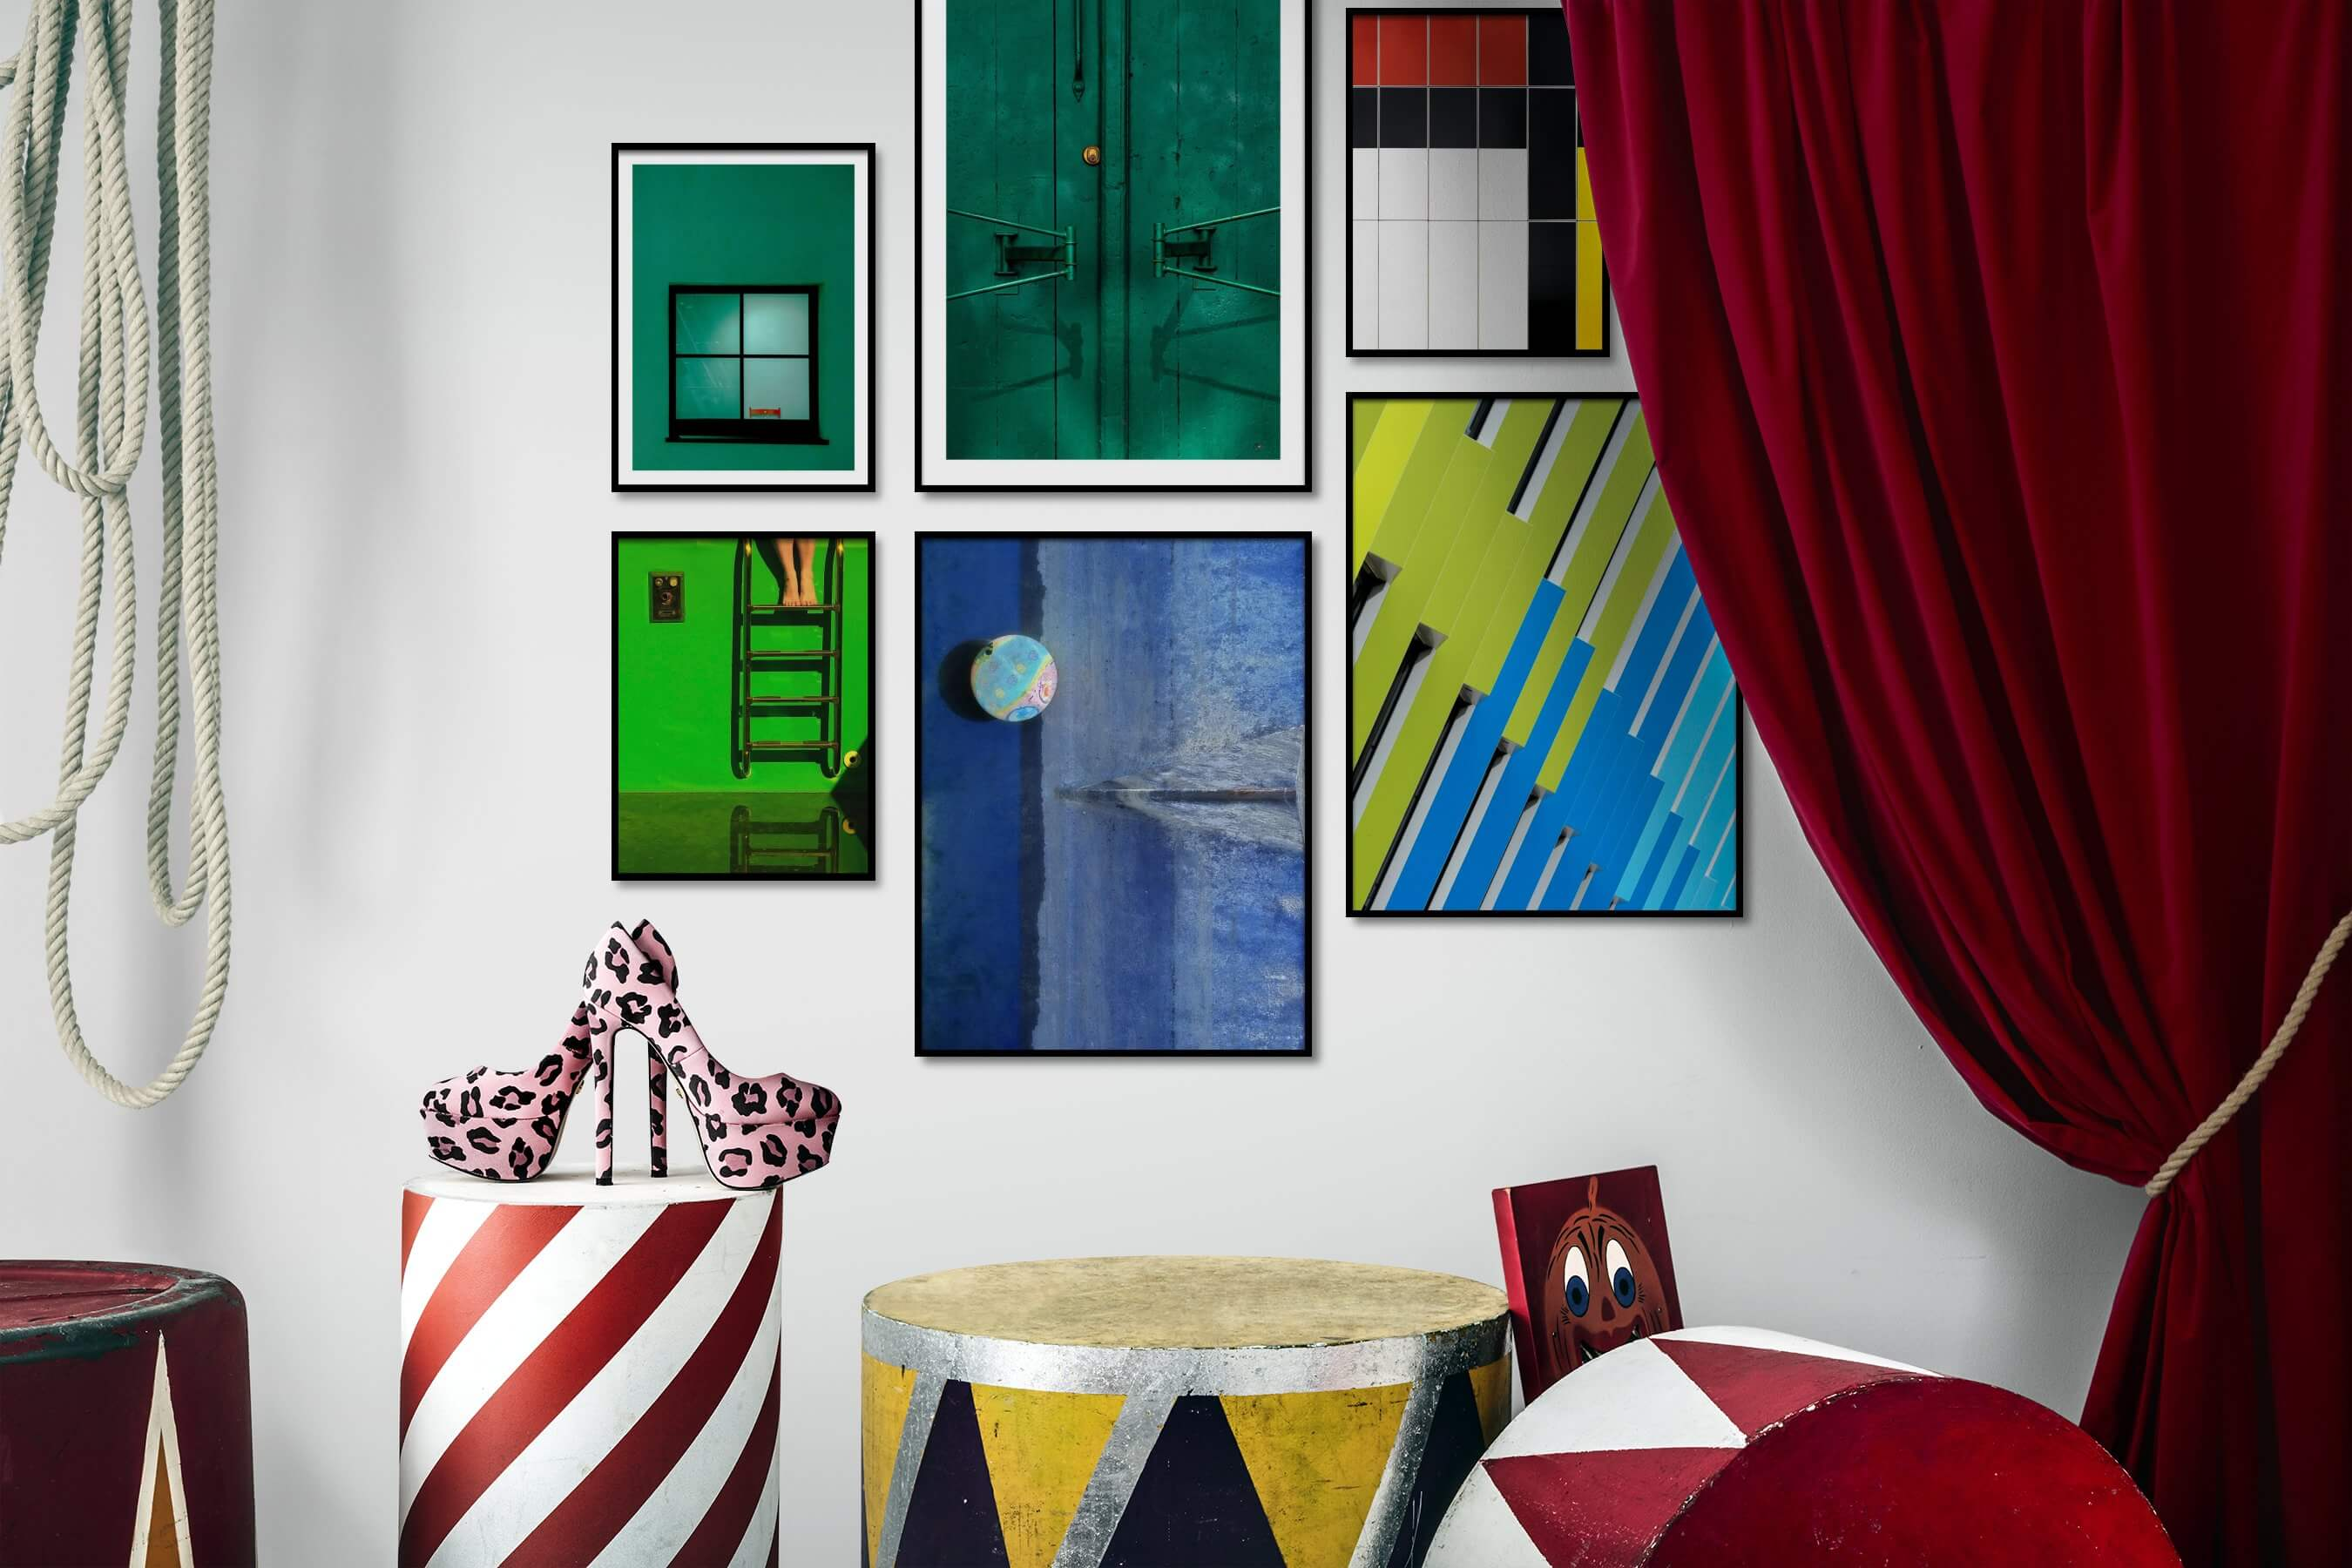 Gallery wall idea with six framed pictures arranged on a wall depicting For the Minimalist, For the Moderate, Colorful, Beach & Water, and For the Maximalist